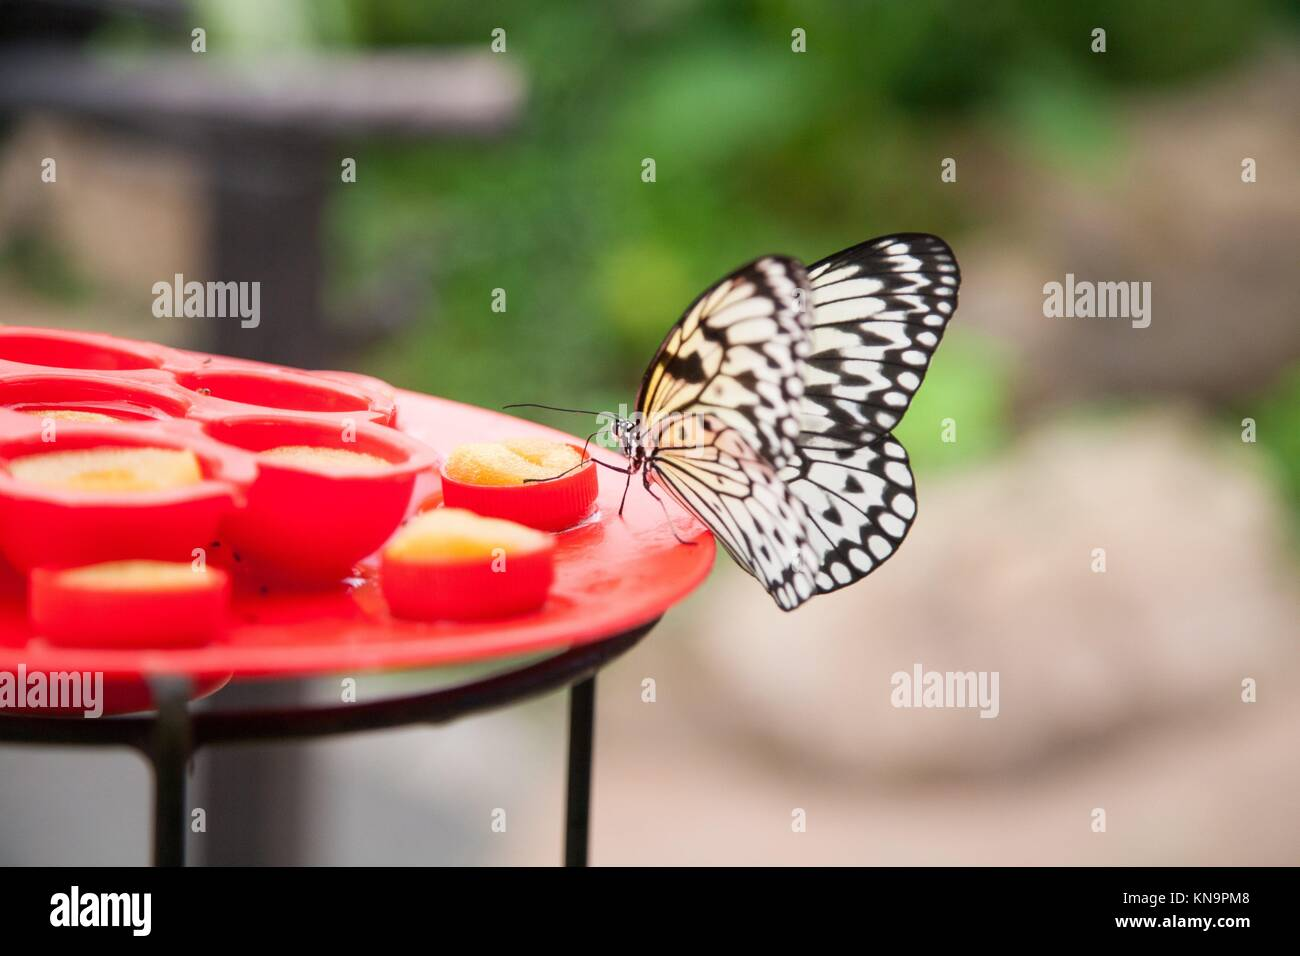 beautiful tropical white and black butterfly named Idea leuconoe, from Nymphalidae family, also known as Paper Kite, - Stock Image